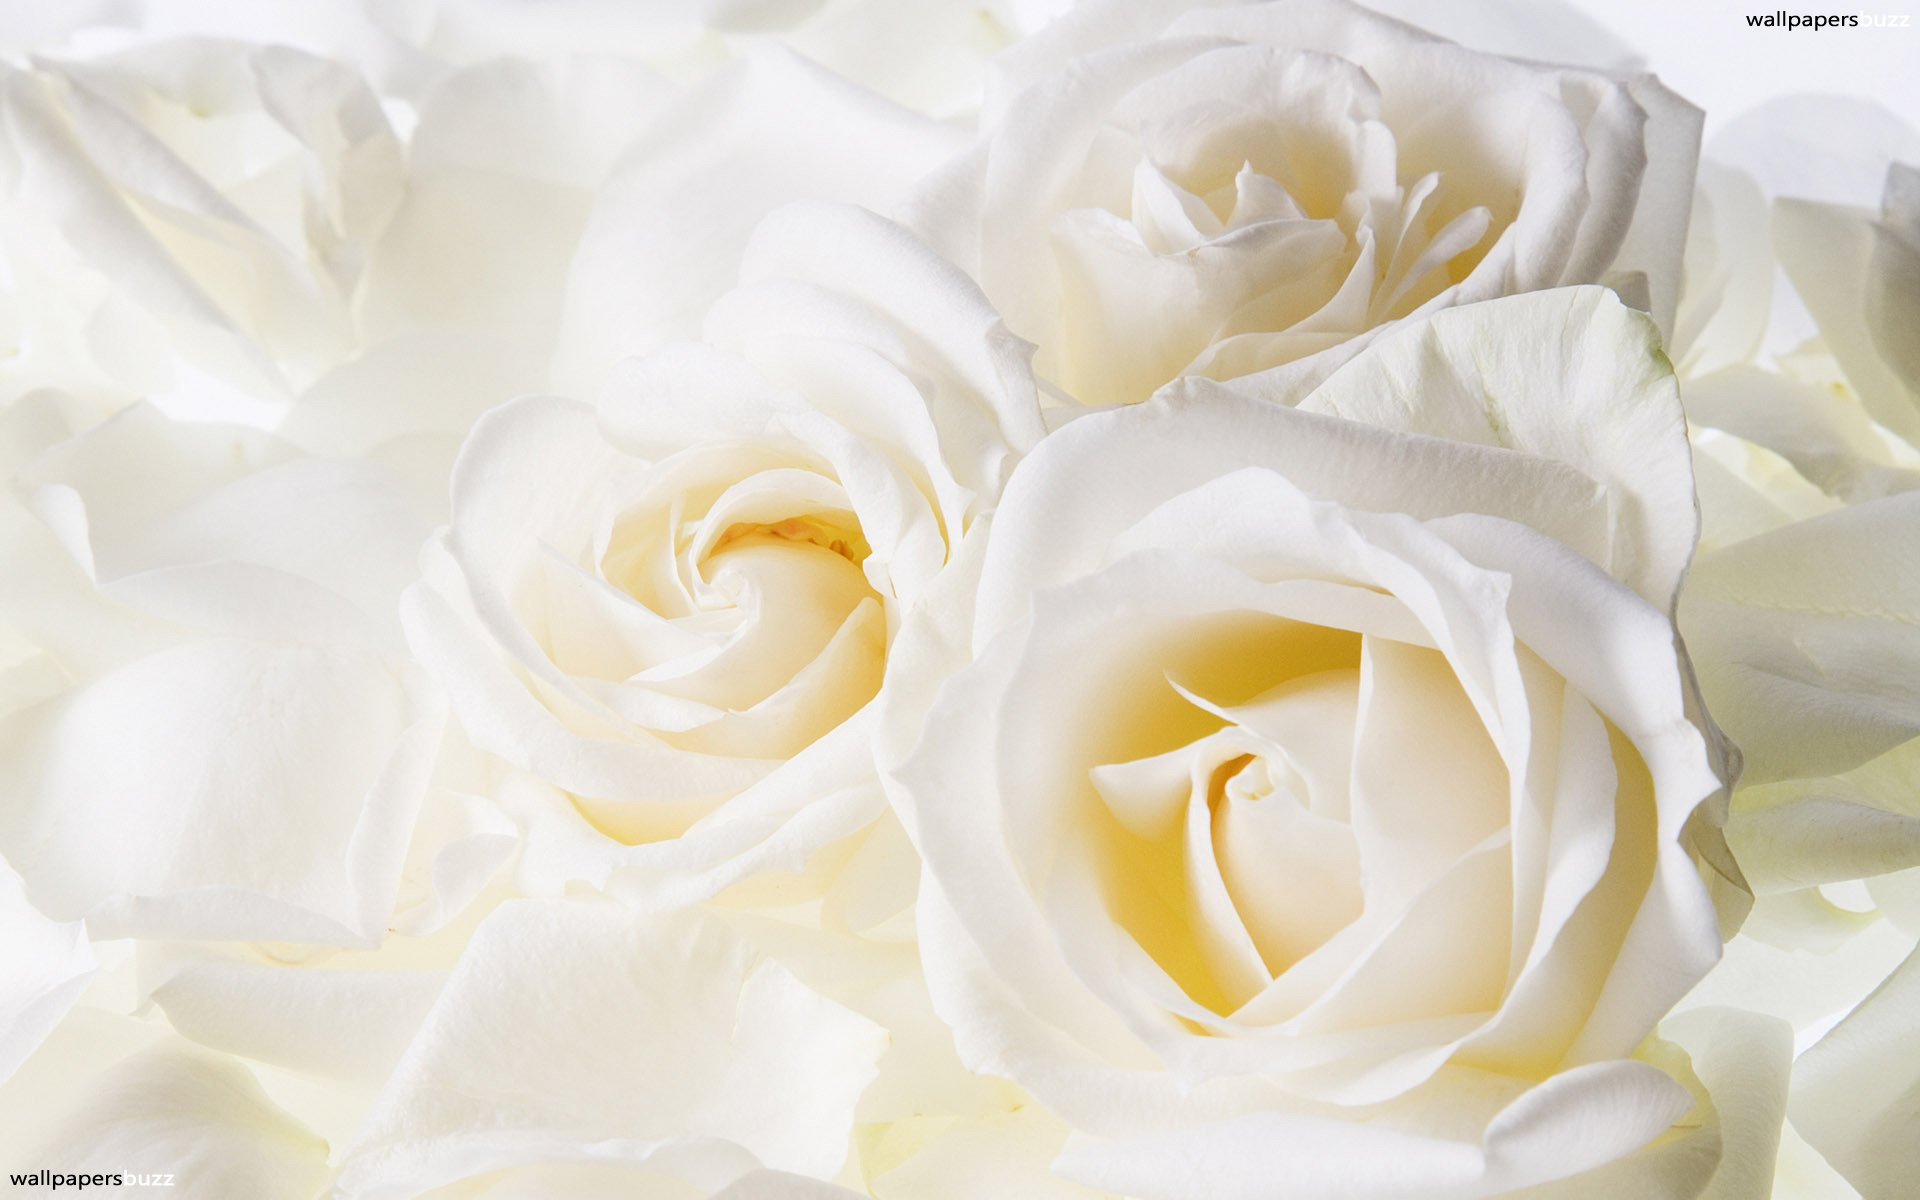 Pretty Rose Wallpaper: Wallpapers for Gt Beautiful White Rose Flowers 1920x1200px